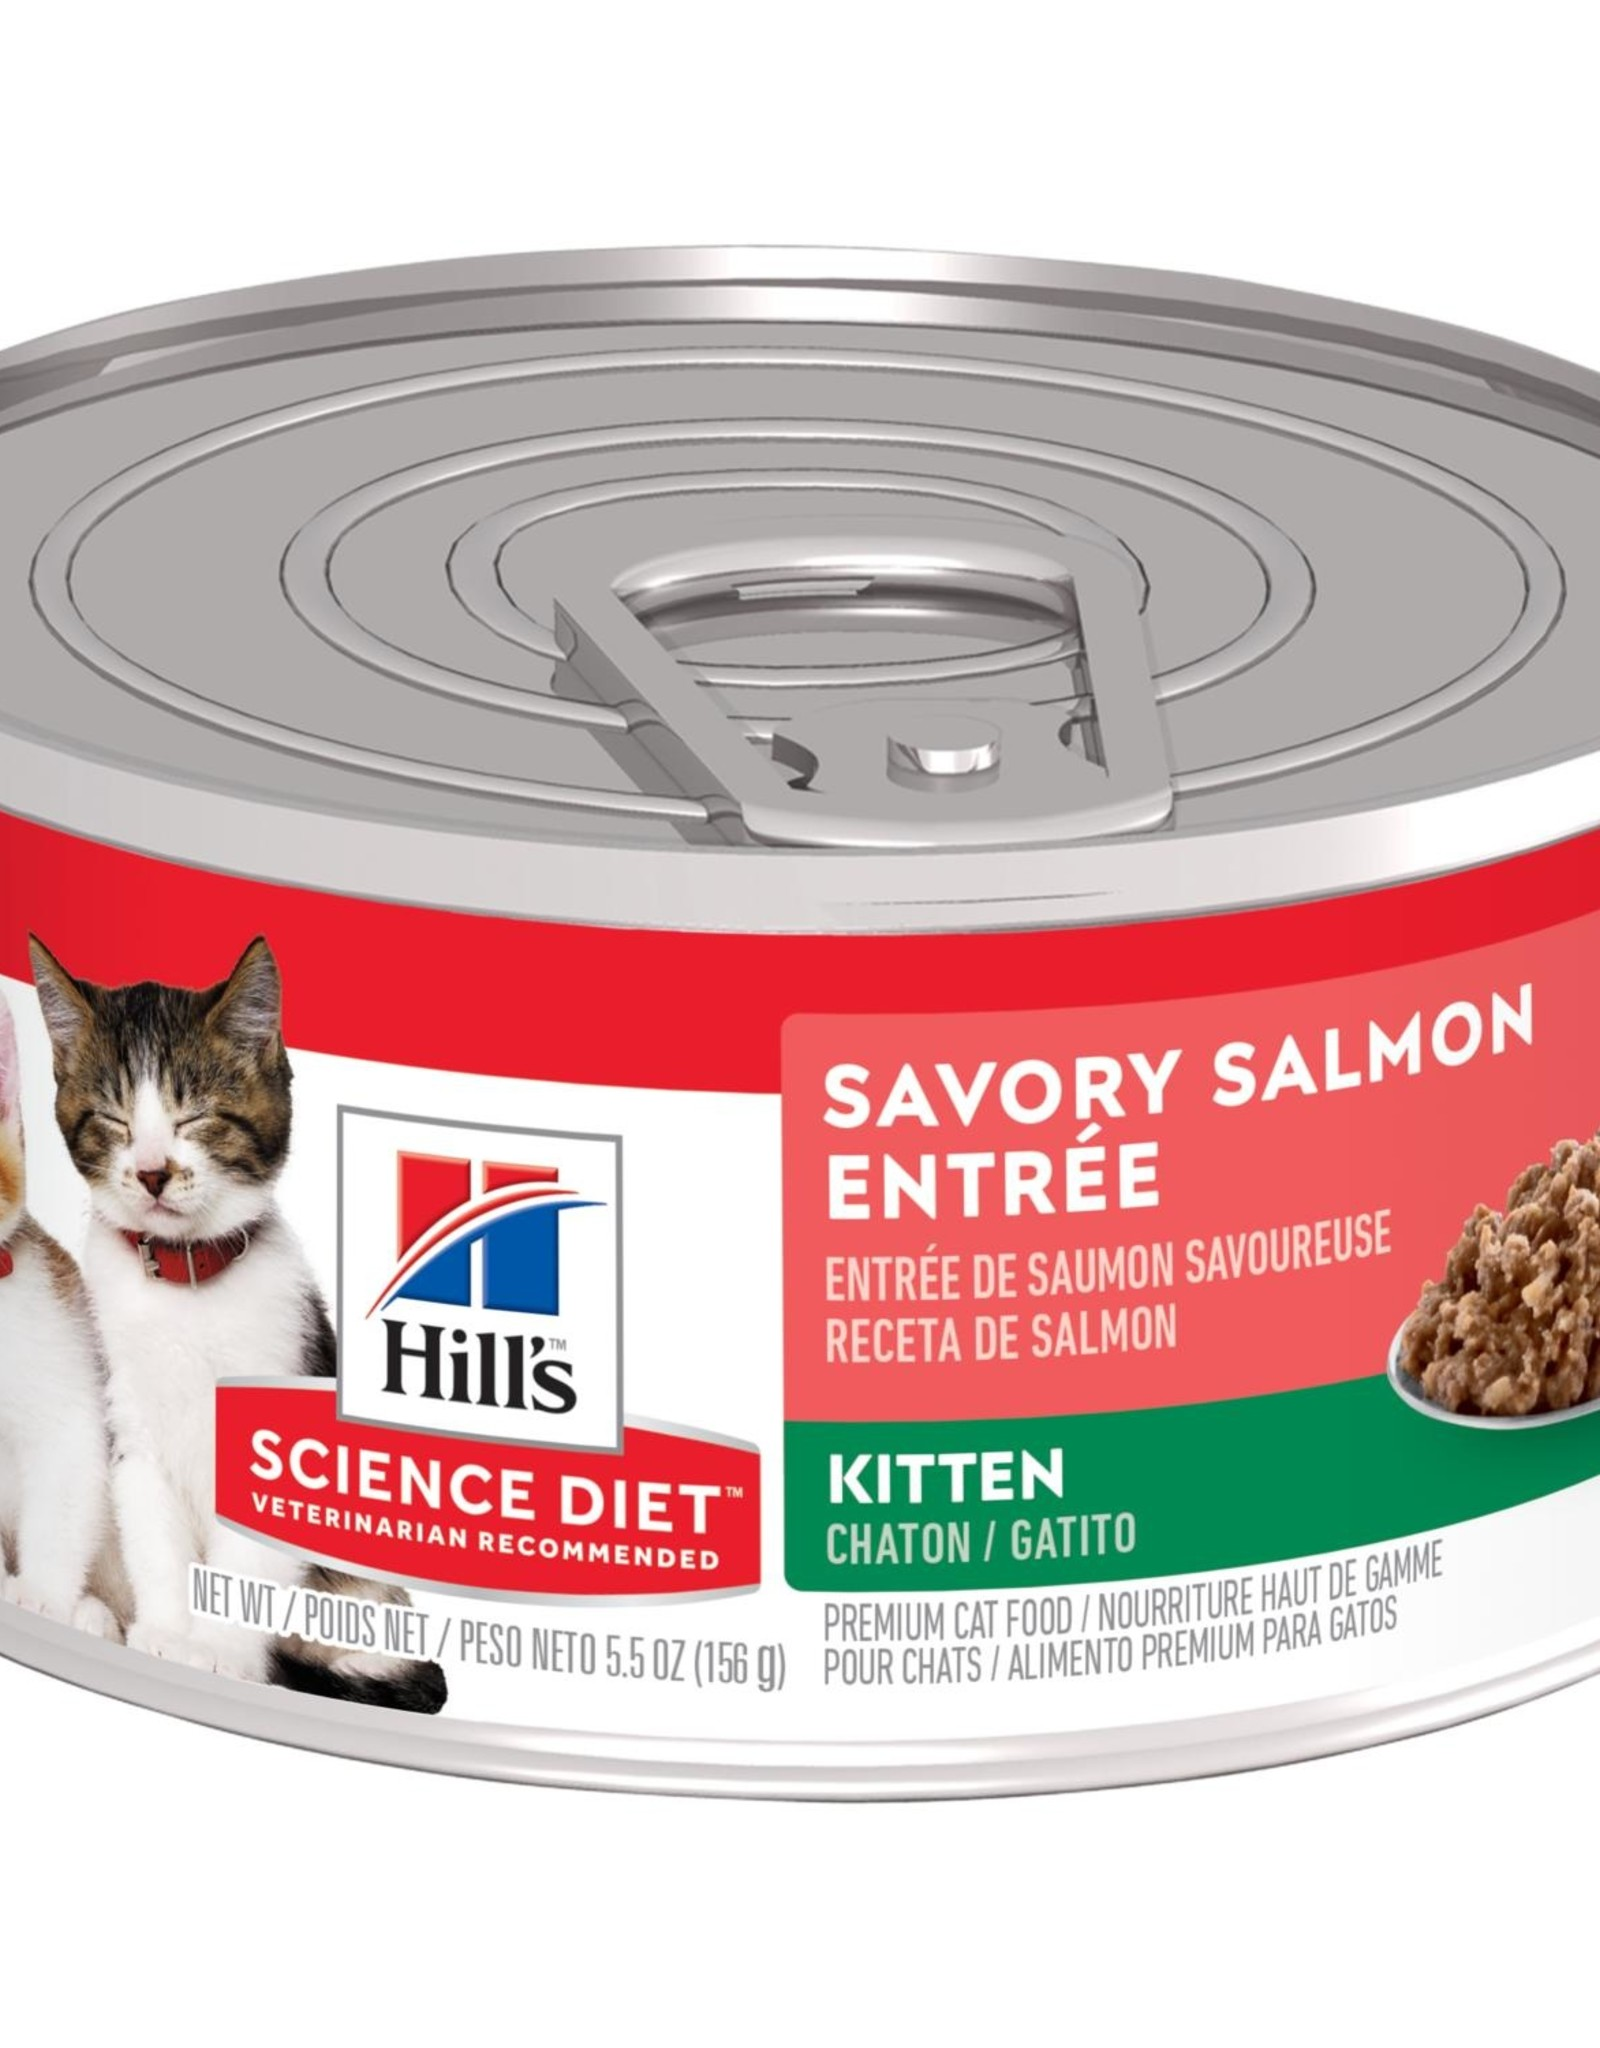 SCIENCE DIET HILL'S SCIENCE DIET FELINE CAN KITTEN SAVORY SALMON 5.5OZ